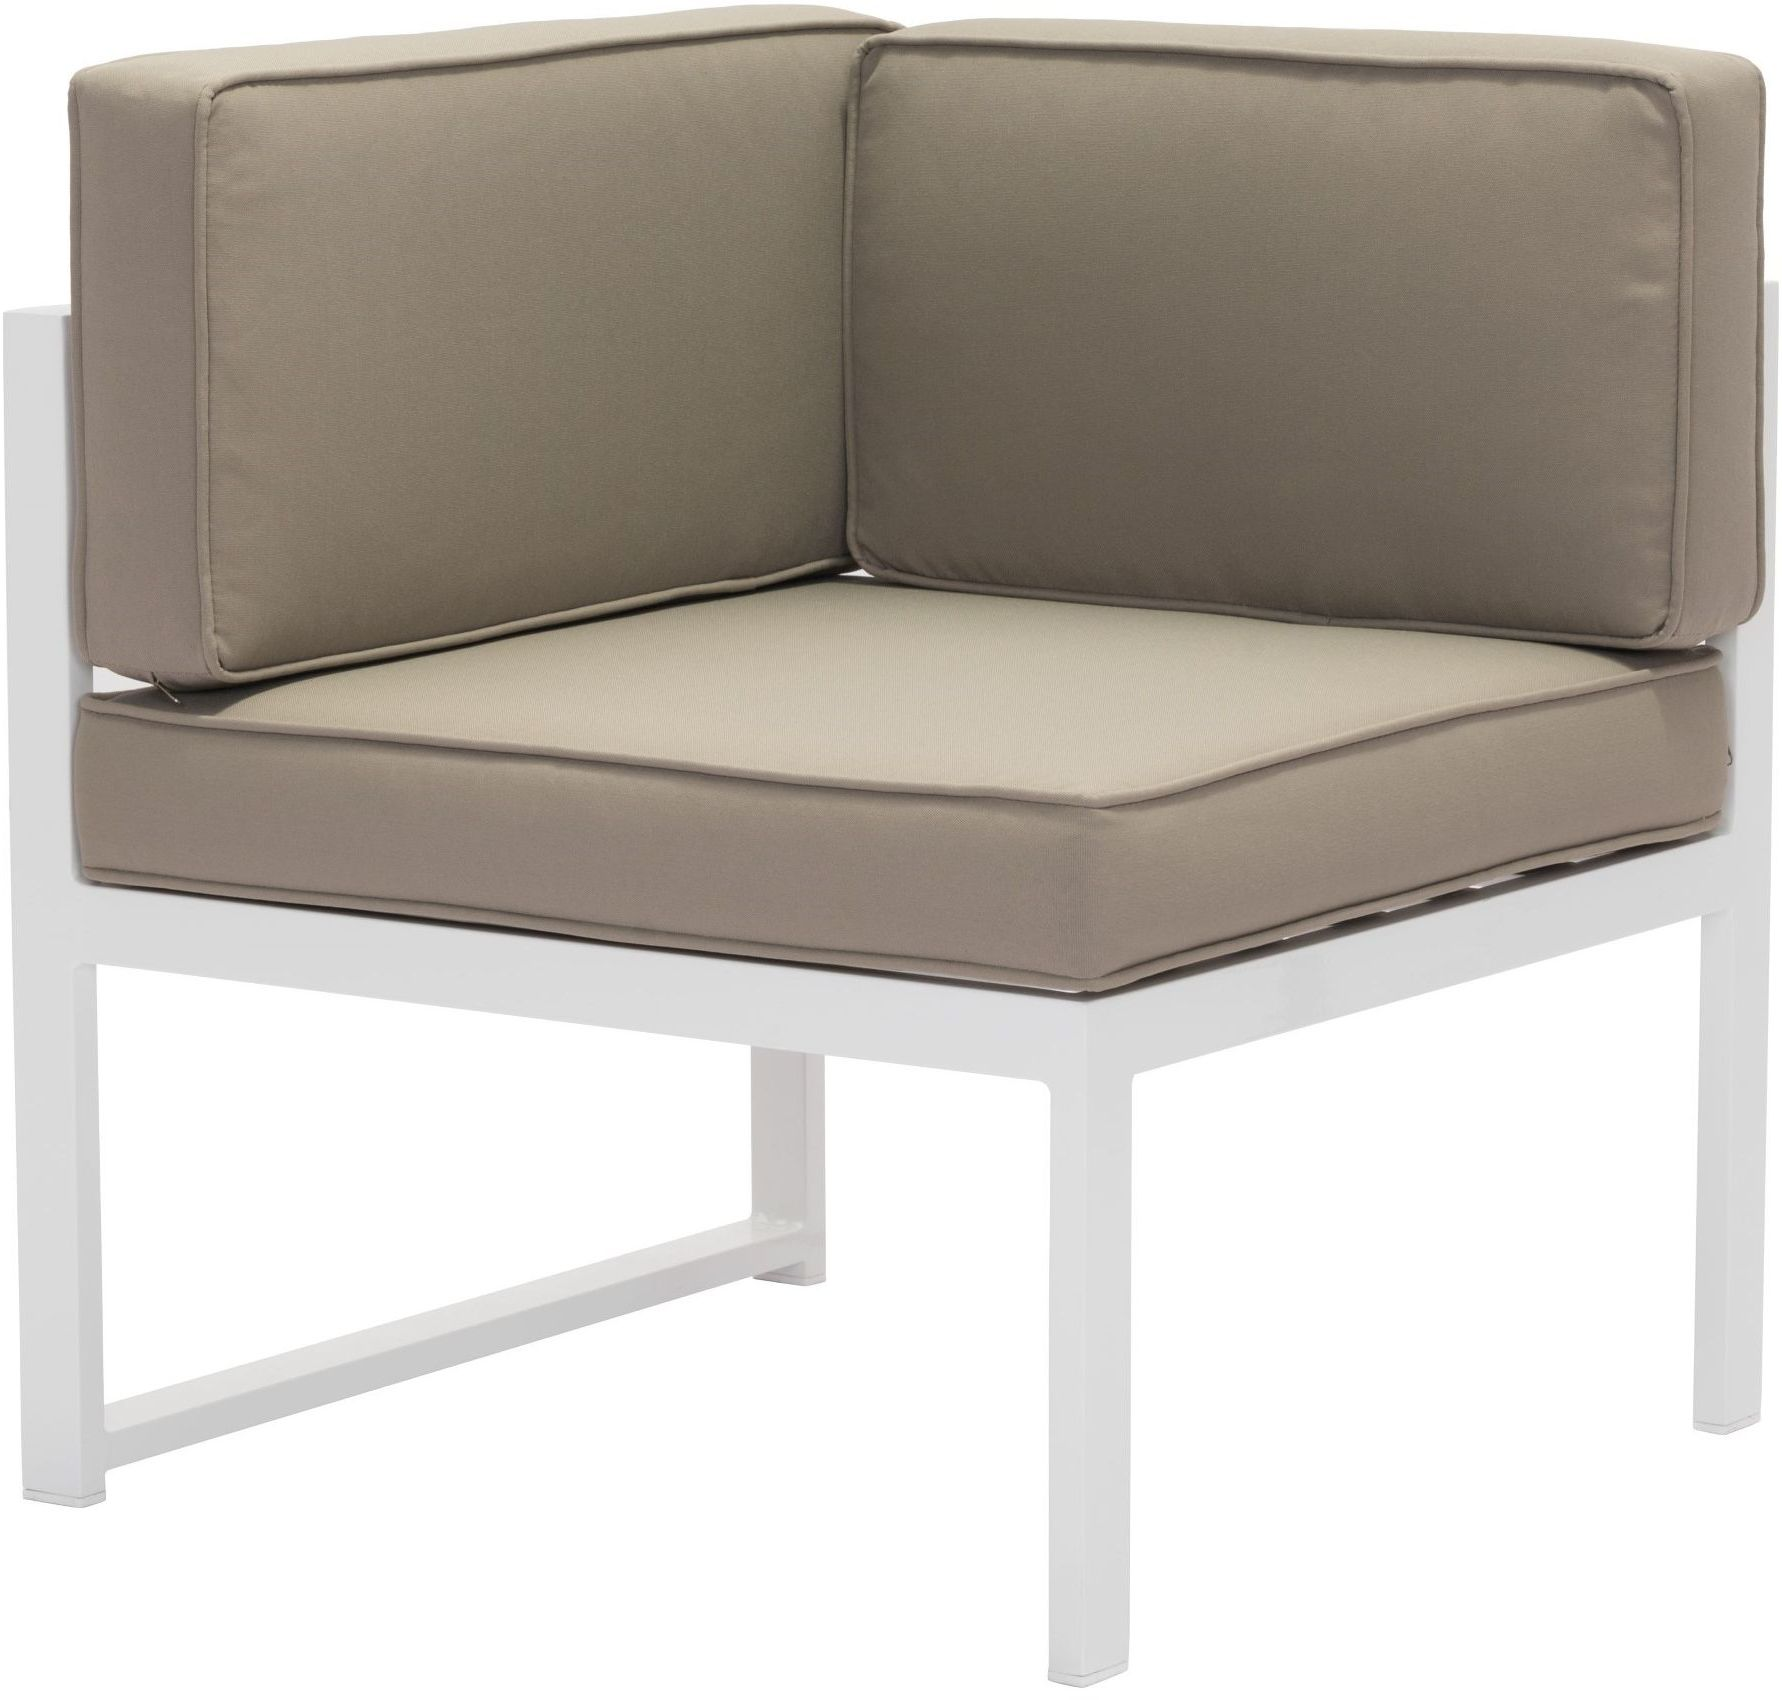 taupe dining chairs canada chair under cover zuo vive outdoor golden beach corner white and